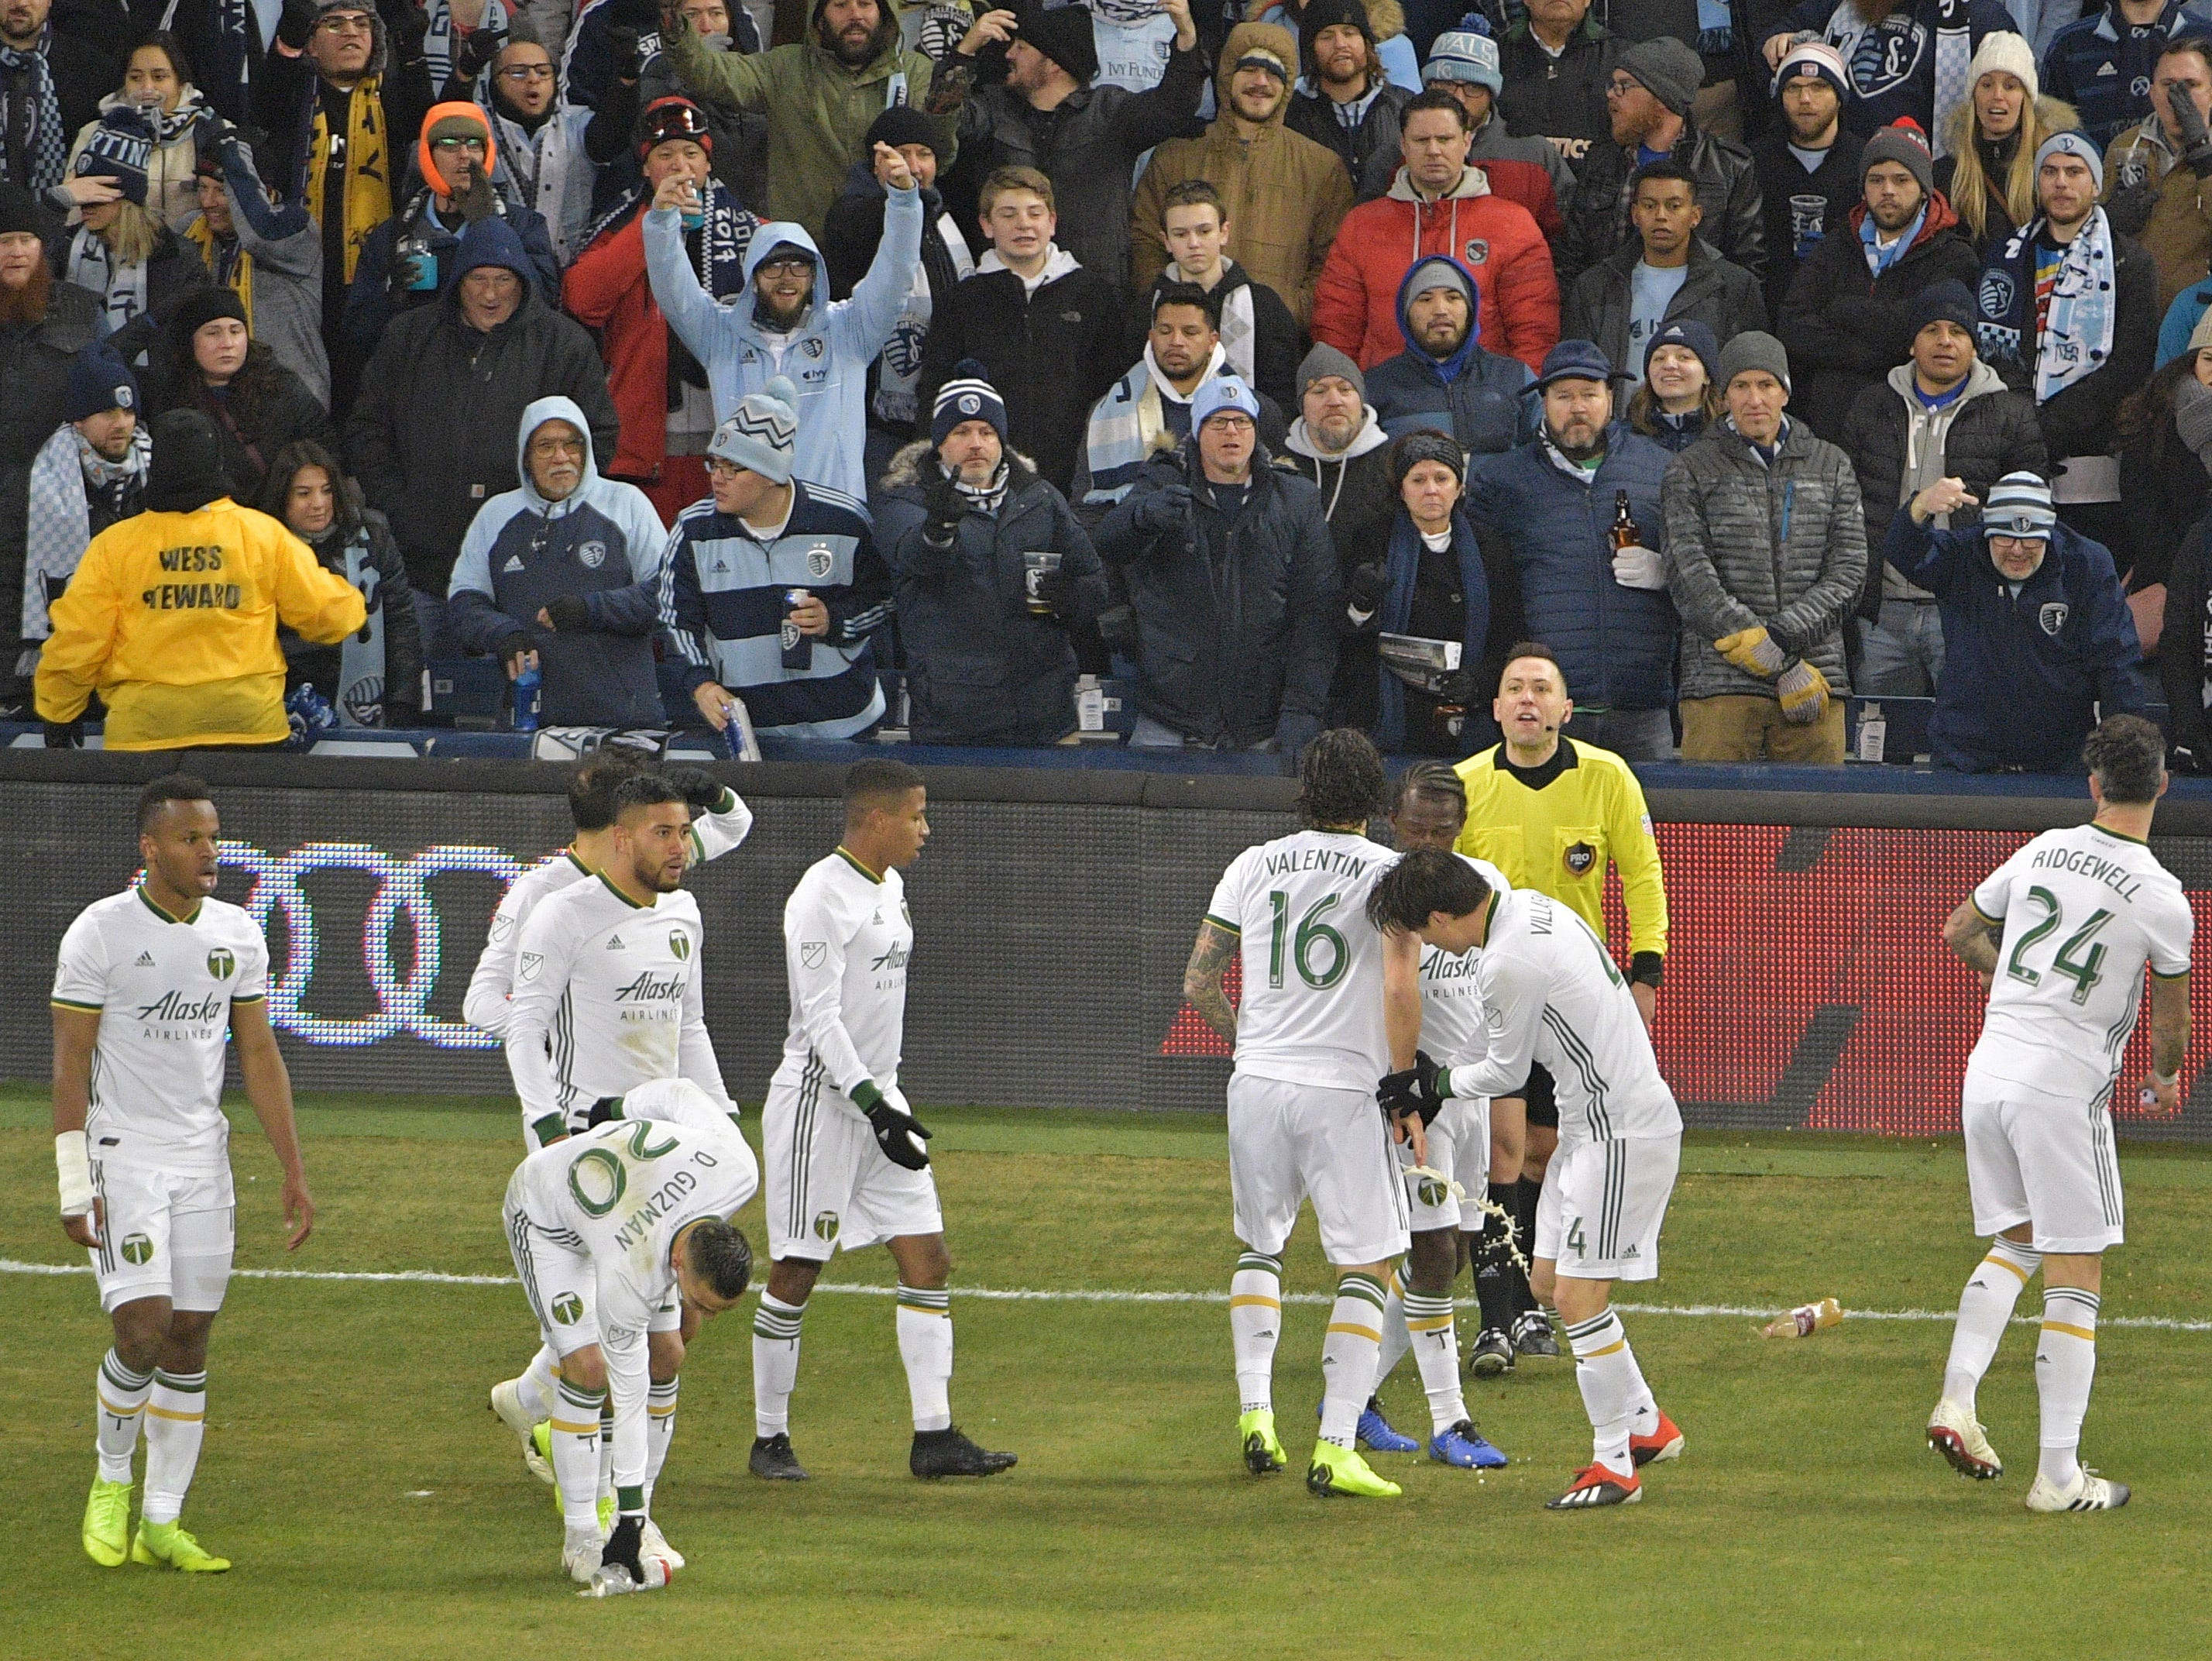 Nov 29, 2018; Kansas City, KS, USA; (Editor's Note: Obscene Gestures) Fans throw bottles on field after a Portland Timbers score in a game against Sporting Kansas City in the second leg of the MLS Western Conference Championship at Children's Mercy Park. Mandatory Credit: Denny Medley-USA TODAY Sports